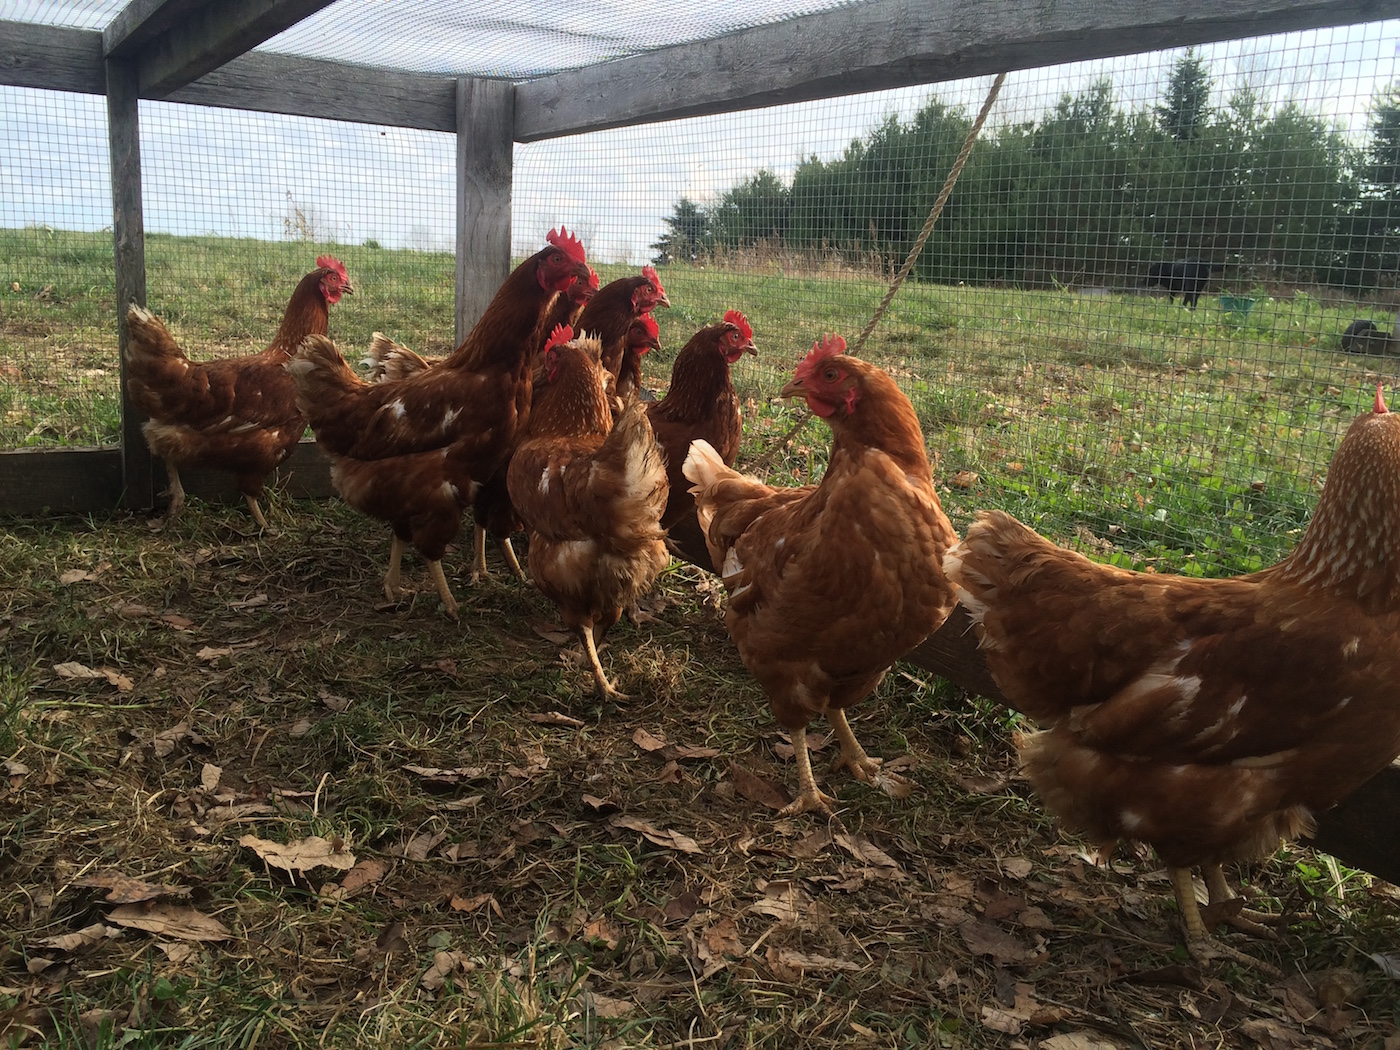 chickens in tractor